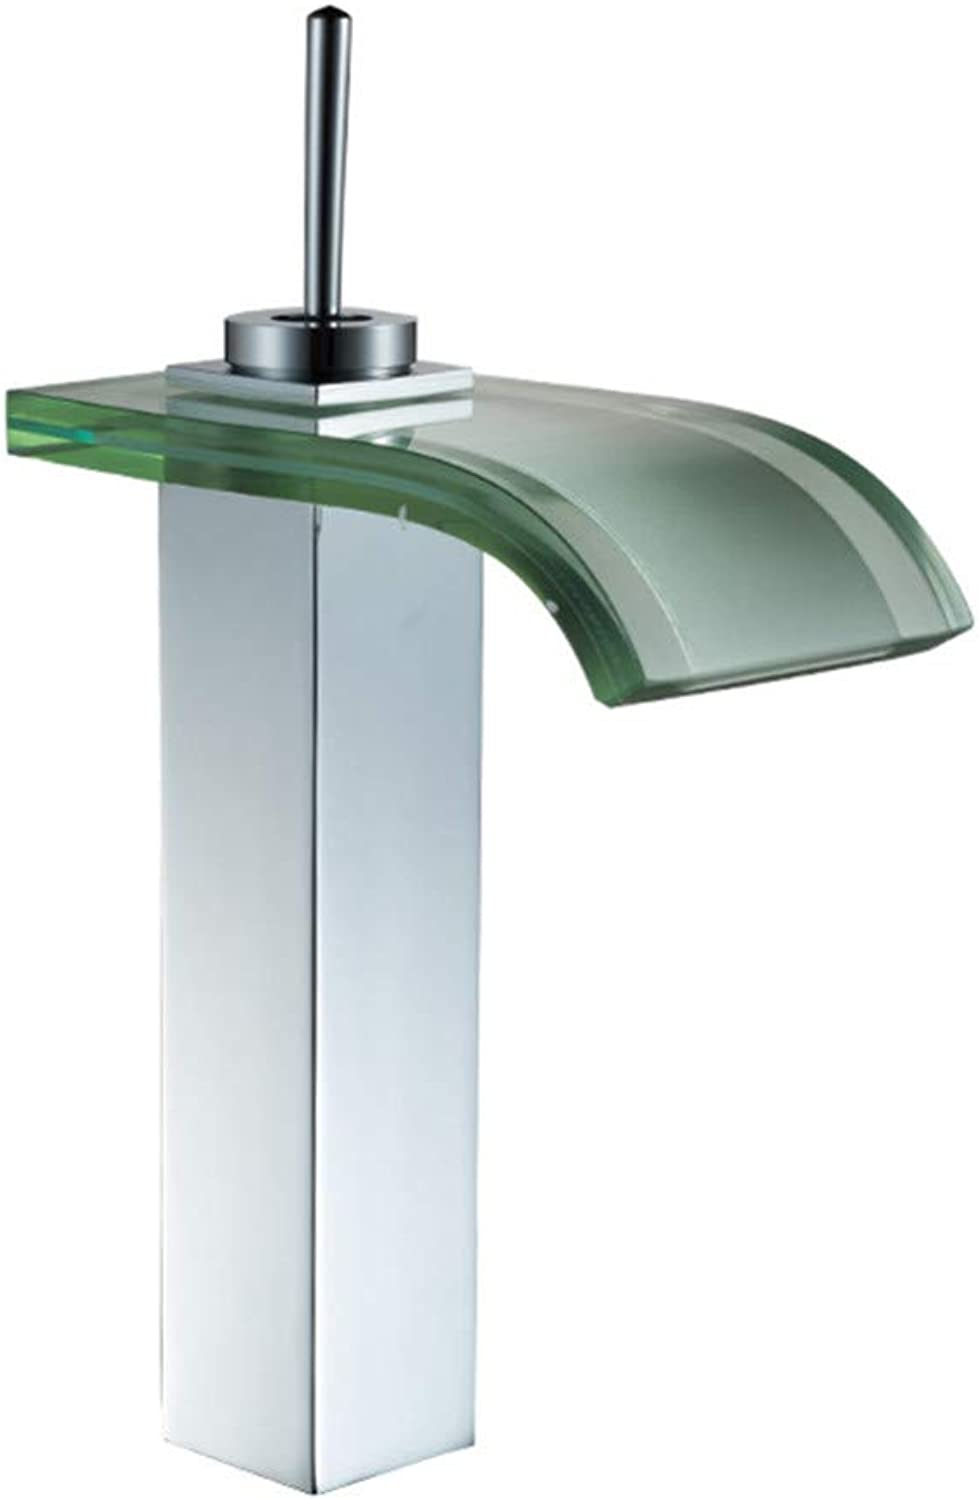 Sink Bathroom Sink Taps Bathroom Basin Hot And Cold Water Mixer Faucet Plating Glass Waterfall Faucet Basin Faucet